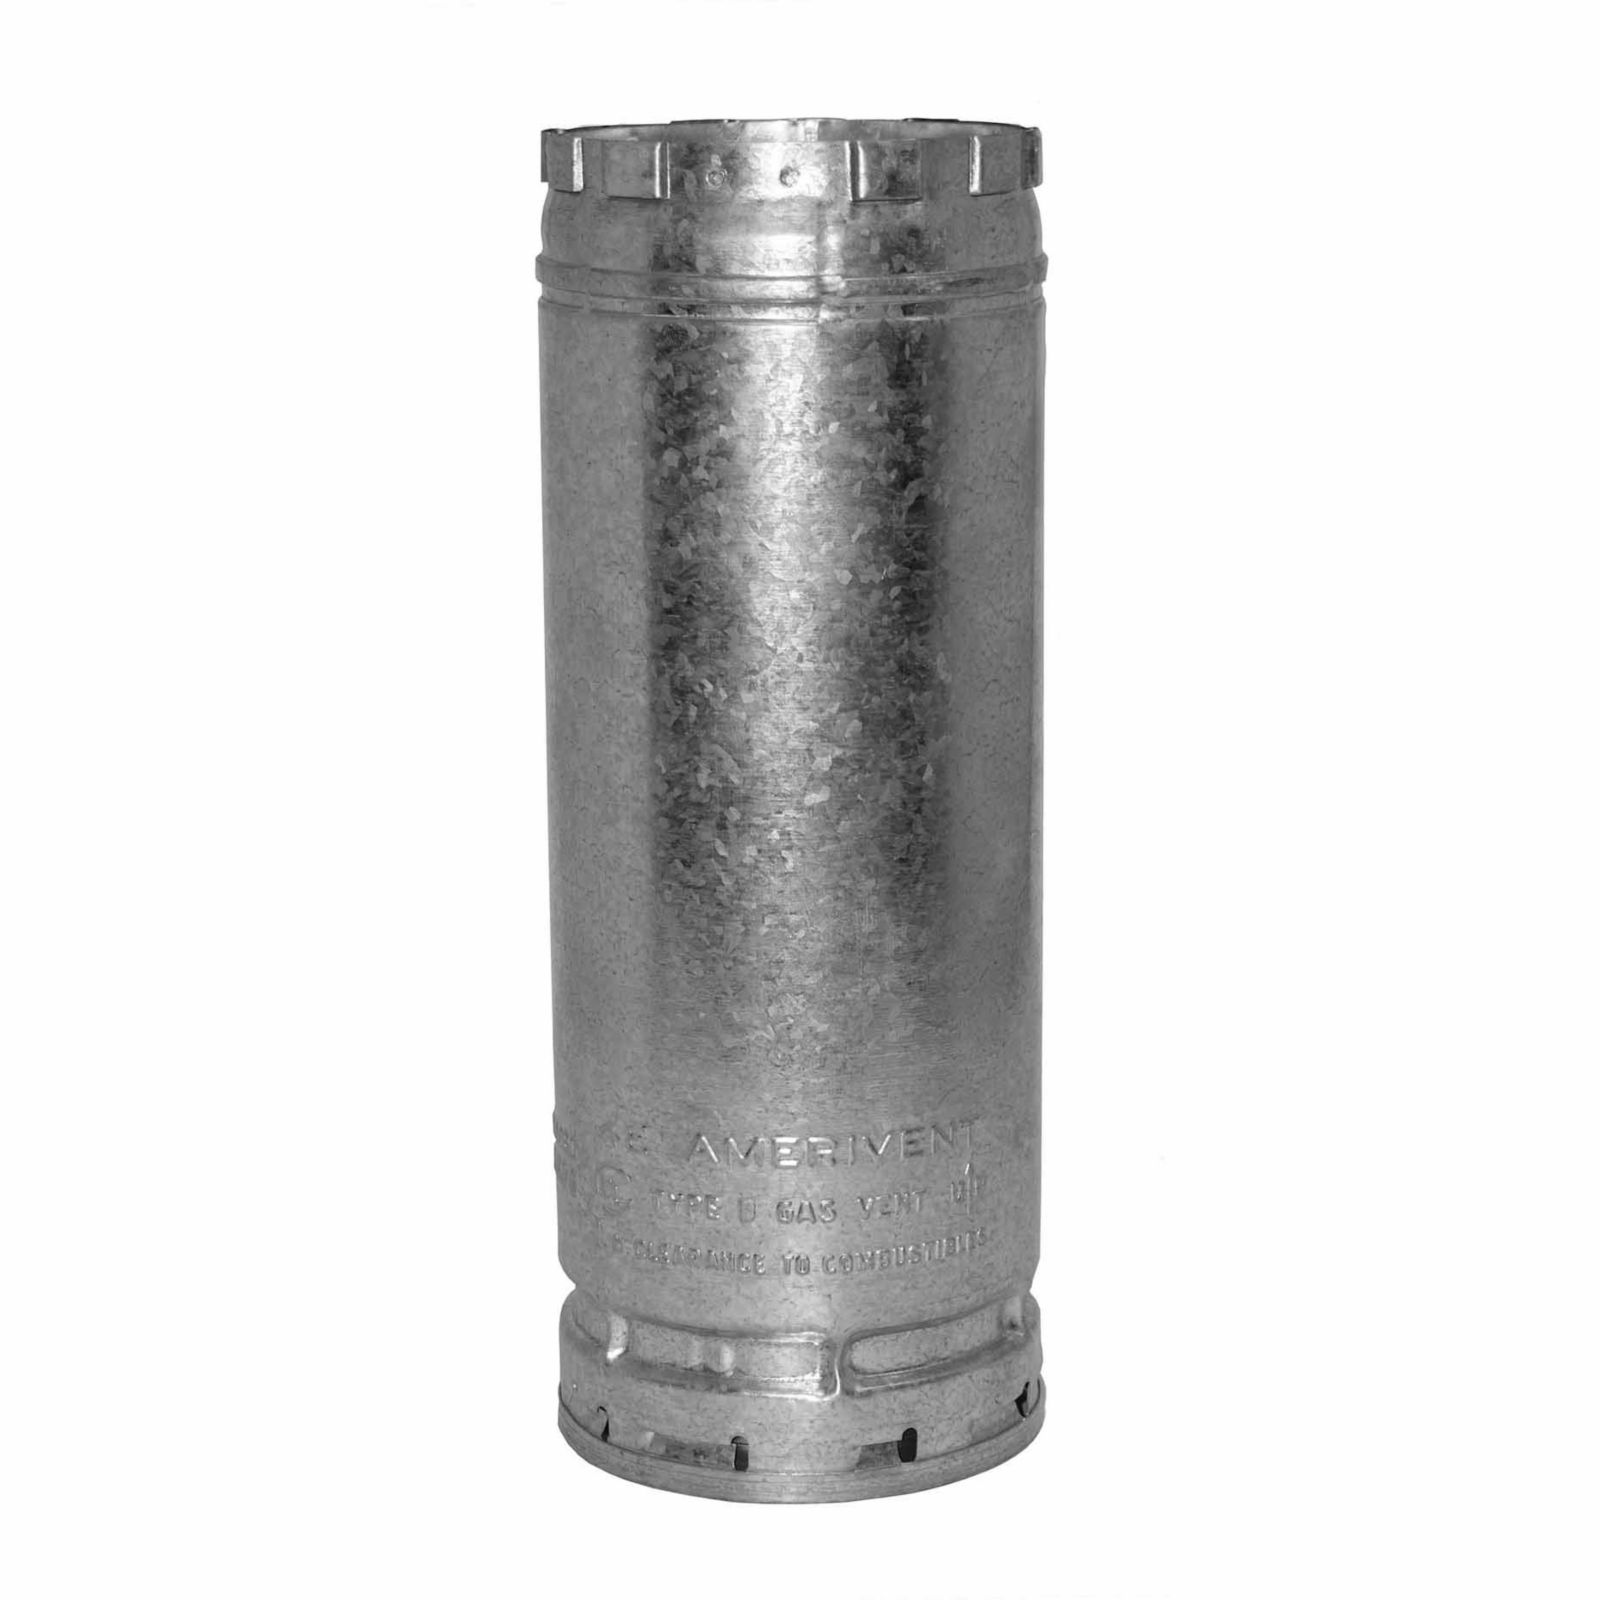 "AmeriVent 5E18 - Pipe Section Type B Gas Vent, 5"" Round X 18"" Length"